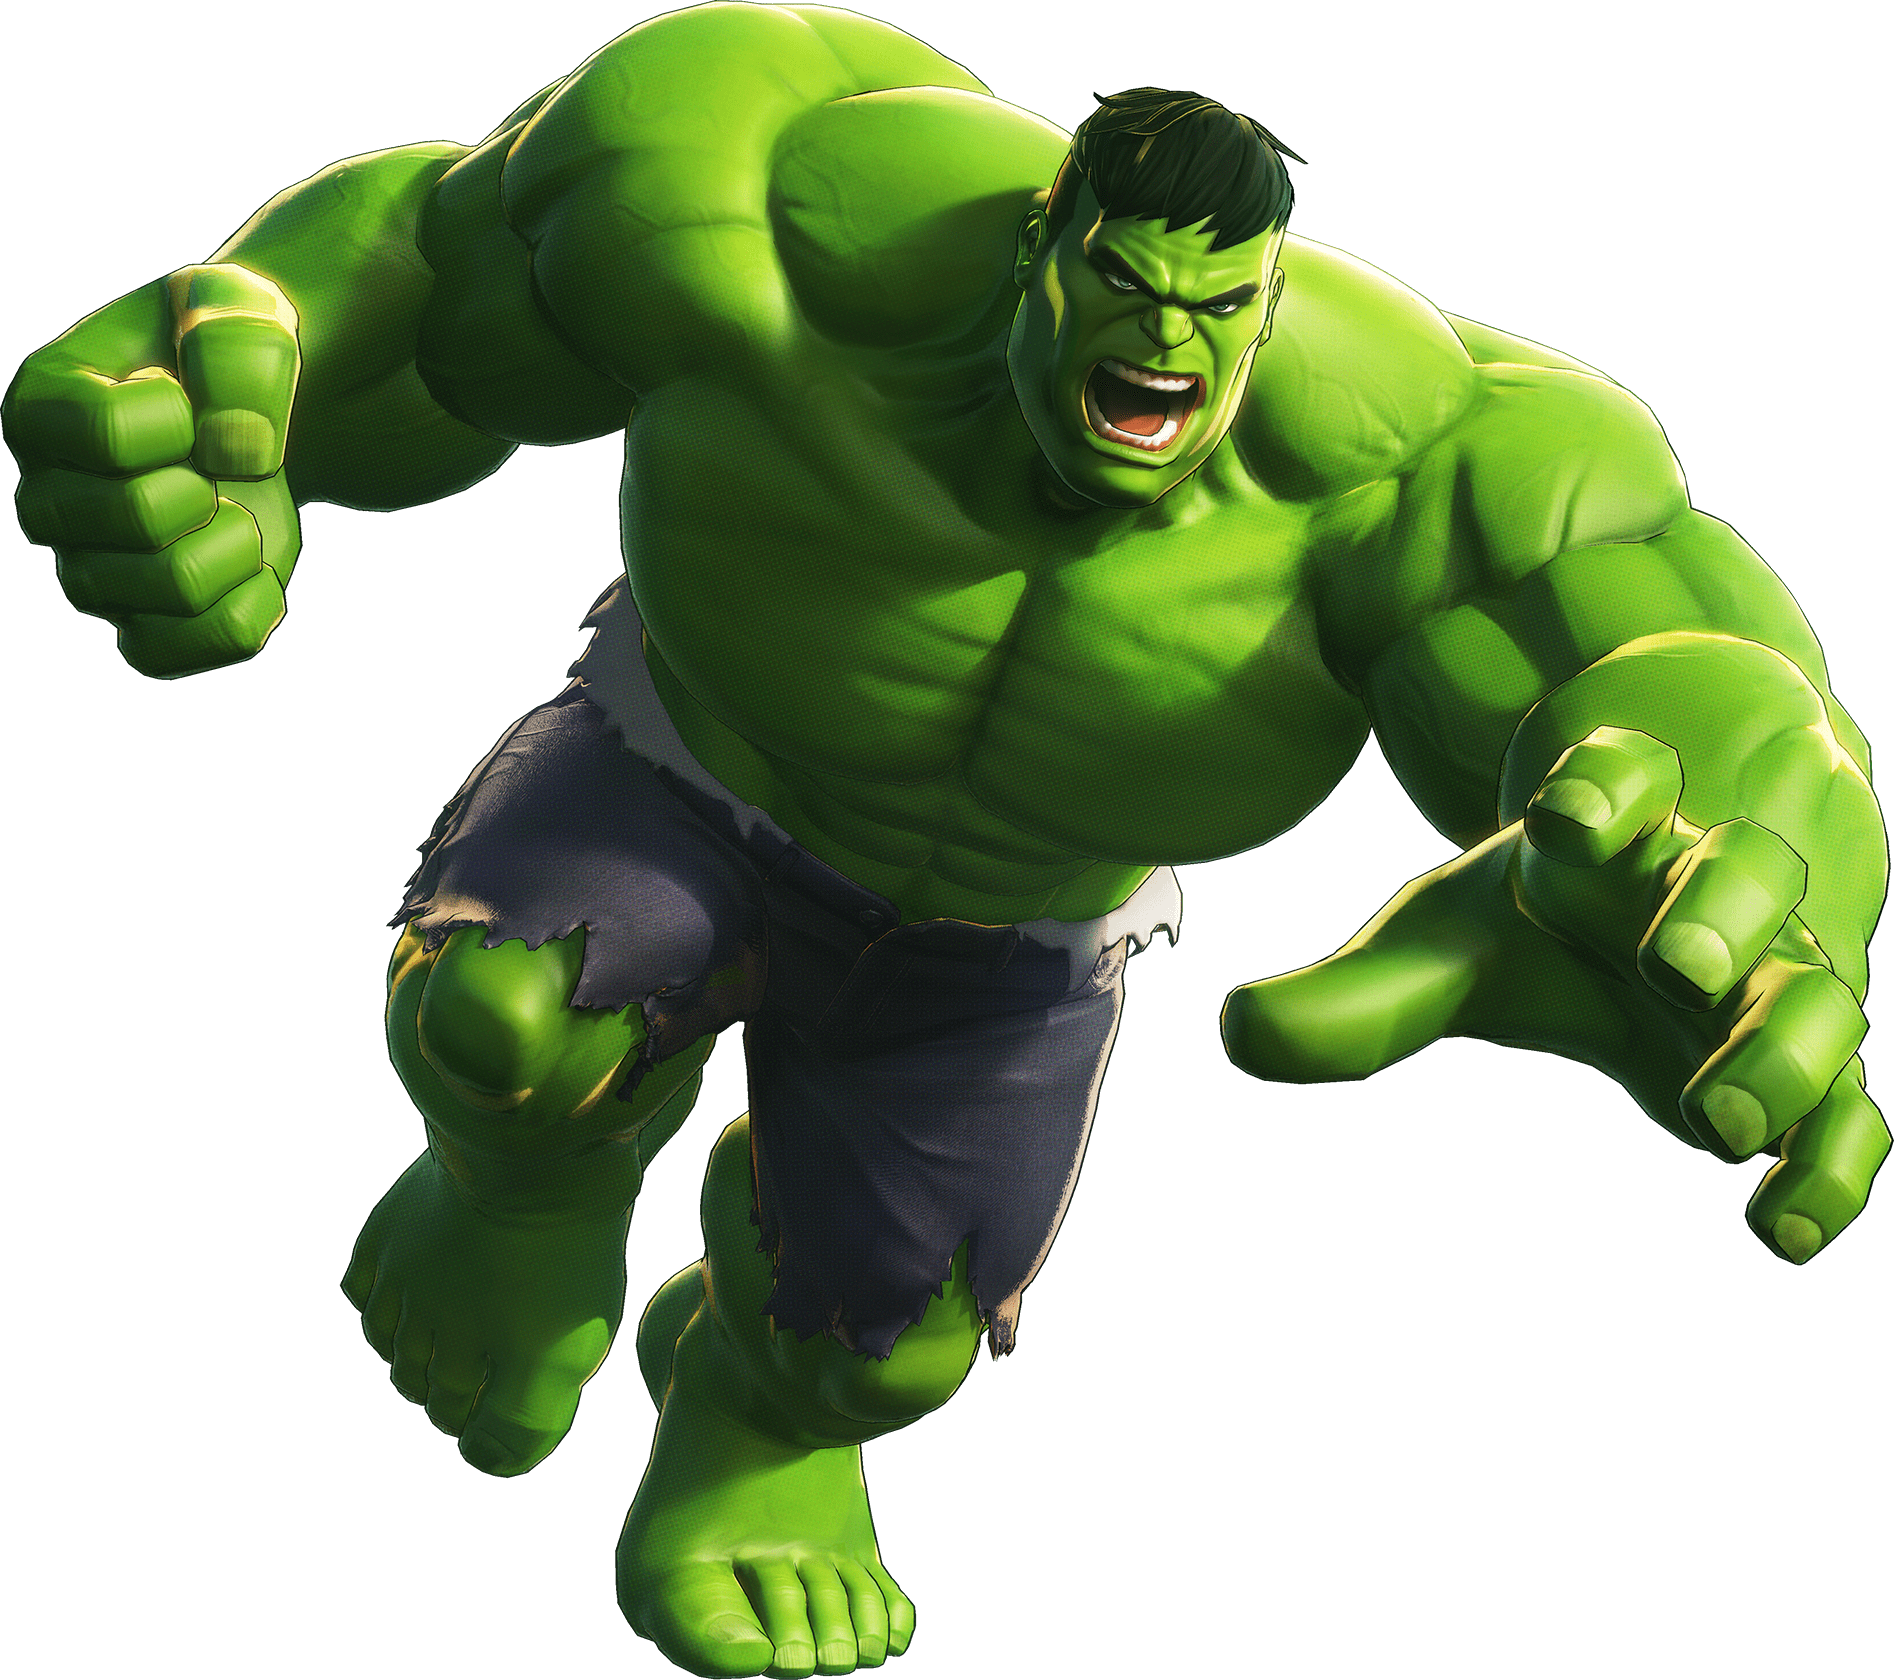 It is an image of Decisive Images of the Hulk